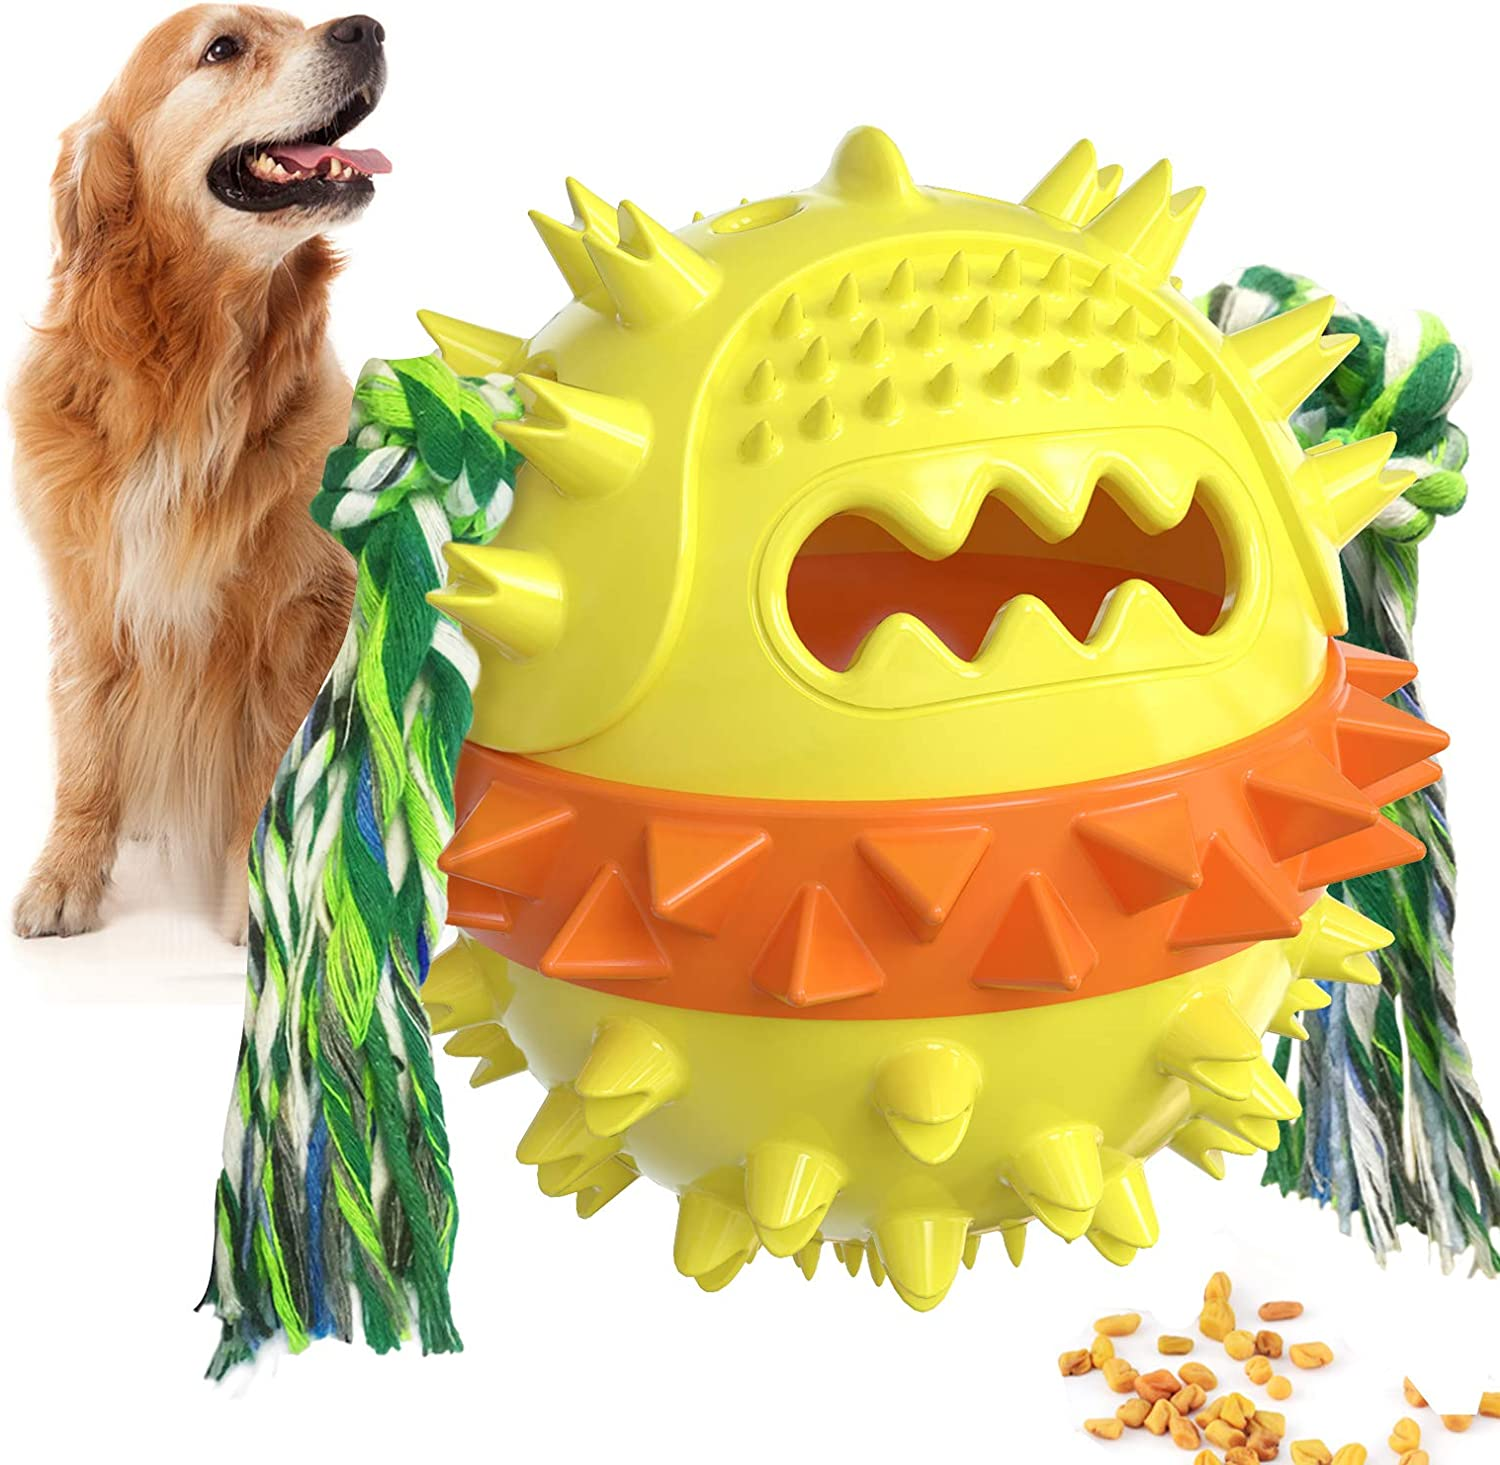 Dog Toys Ball, Non-Toxic Bite Resistant Molar Toy for Puppy Dog or Cat, Treat Toy Ball as Squeaking Food Leaking Ball/ Chew Toy/ Teeth Cleaning Ball/ Bouncy Toy with Rope for Pet IQ Training/ Playing